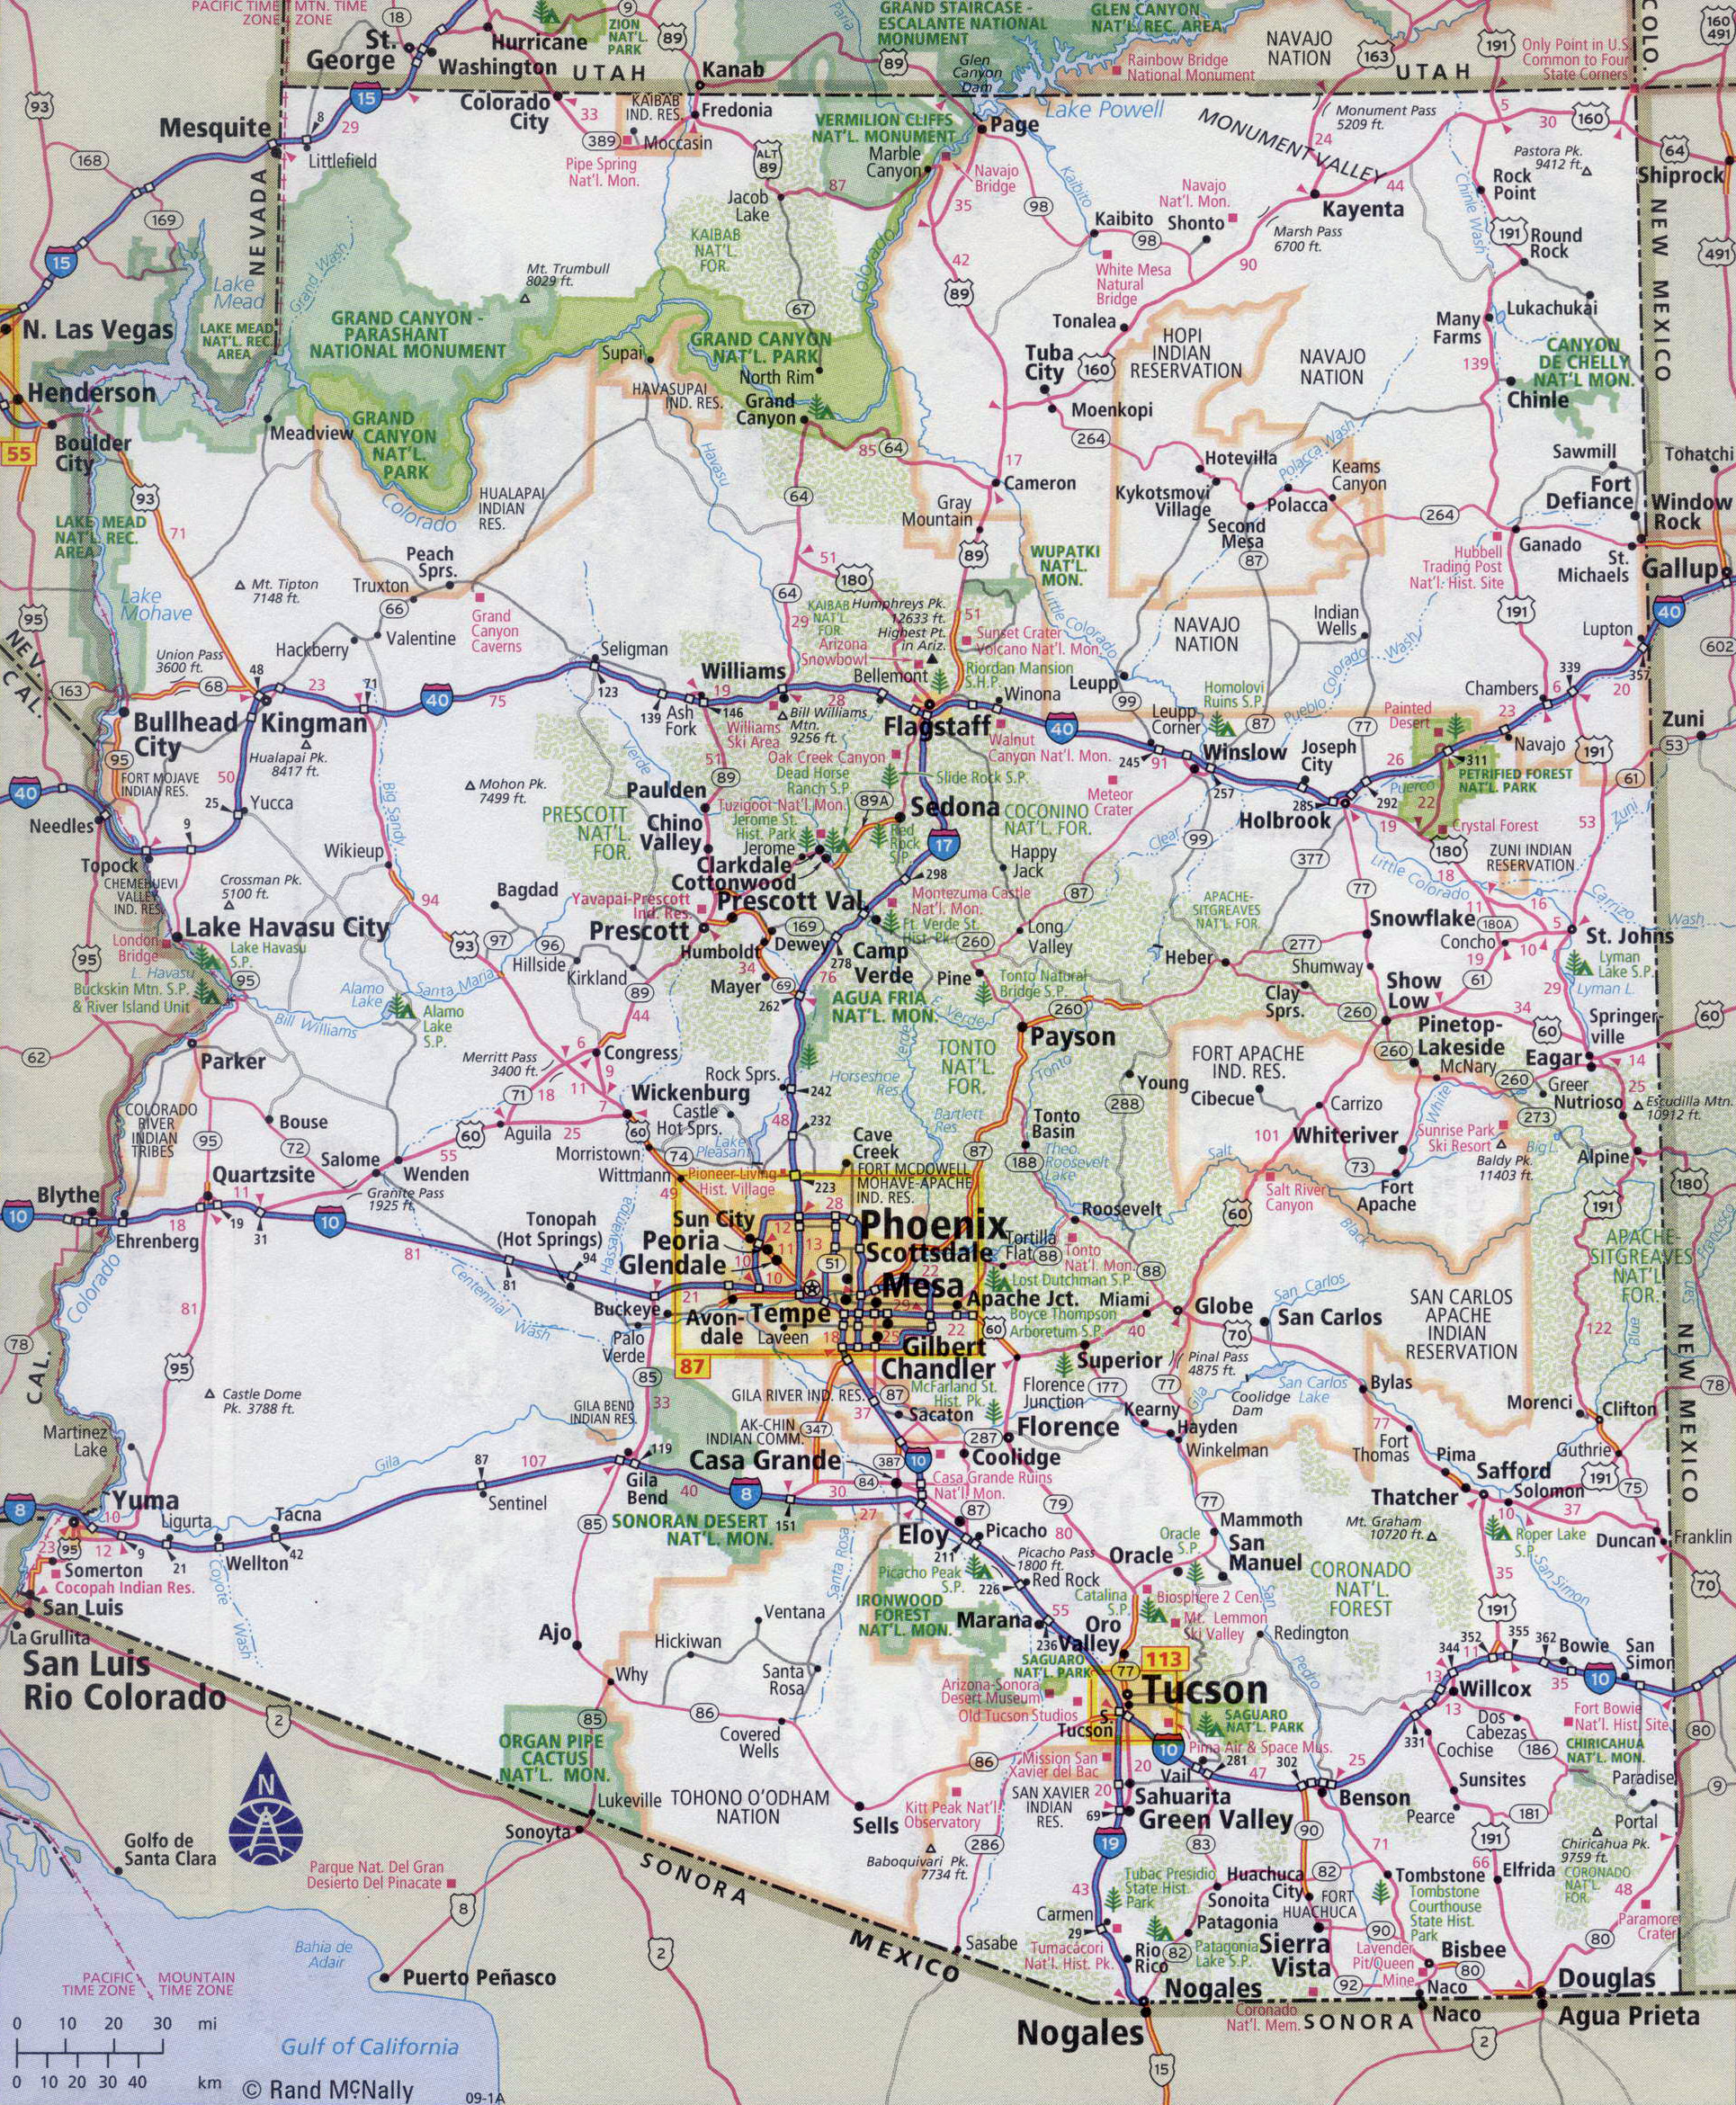 Ebook Usa Cities And States Travel Holiday Map TravelquazCom - Arizona map us